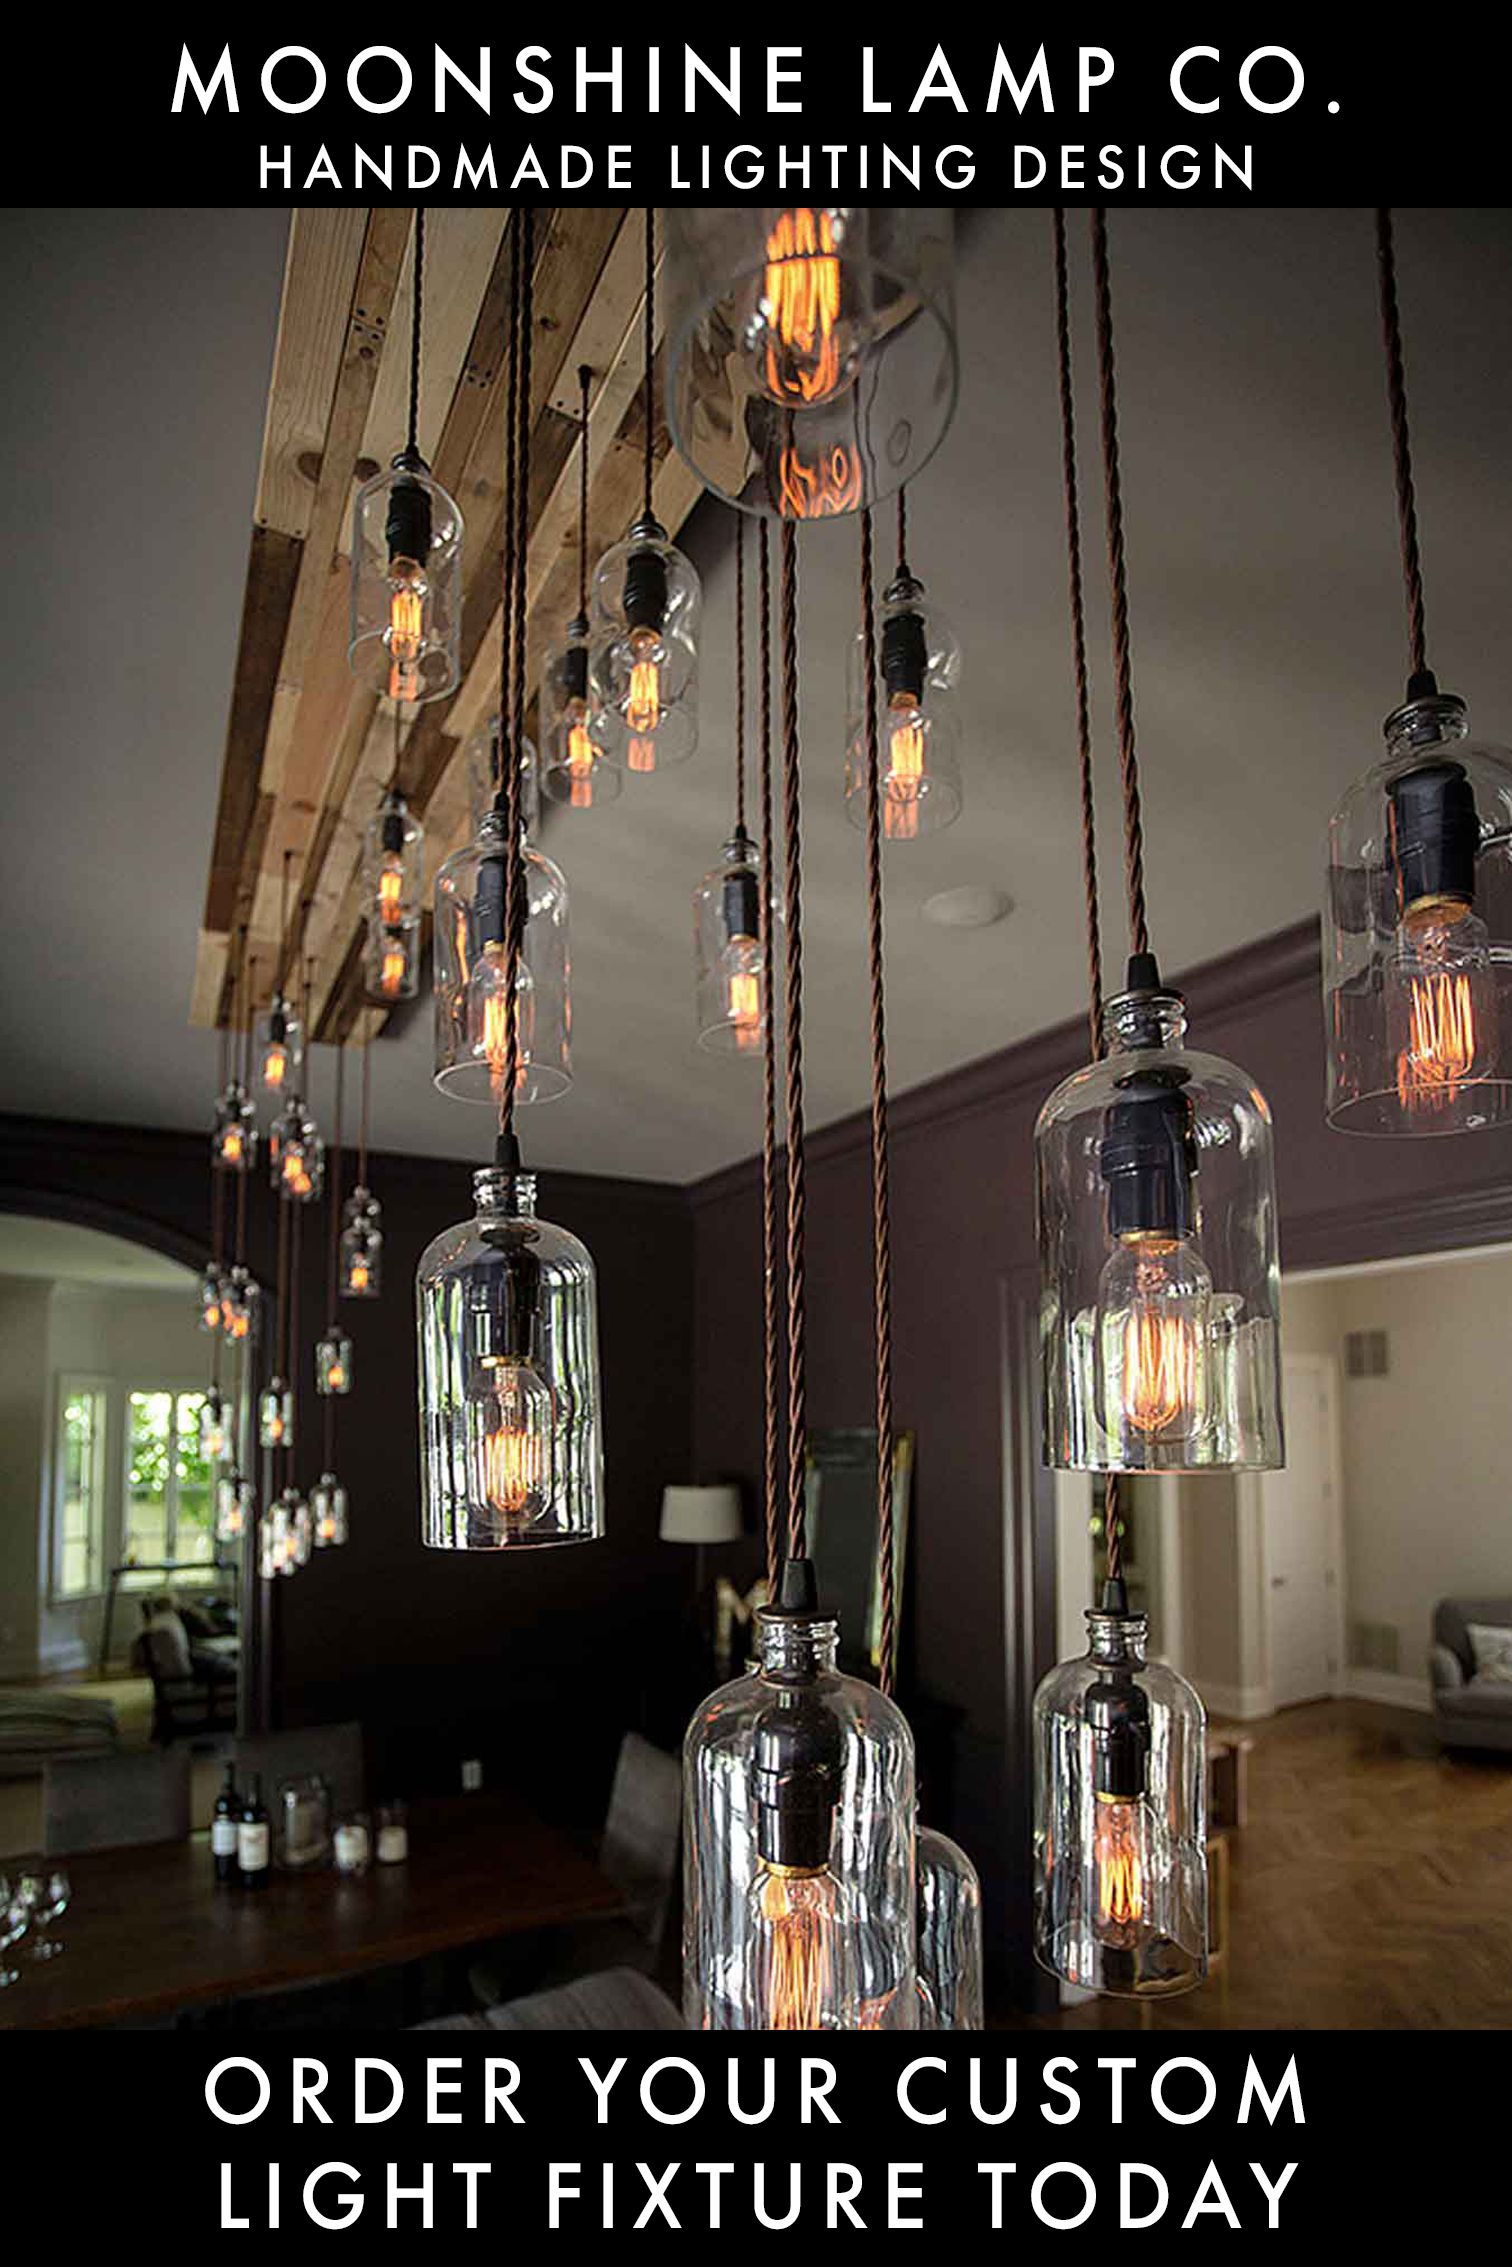 Unique Rustic And Modern Lighting Designed In California Made In America Moonshine Lamp Is A Custom Li In 2020